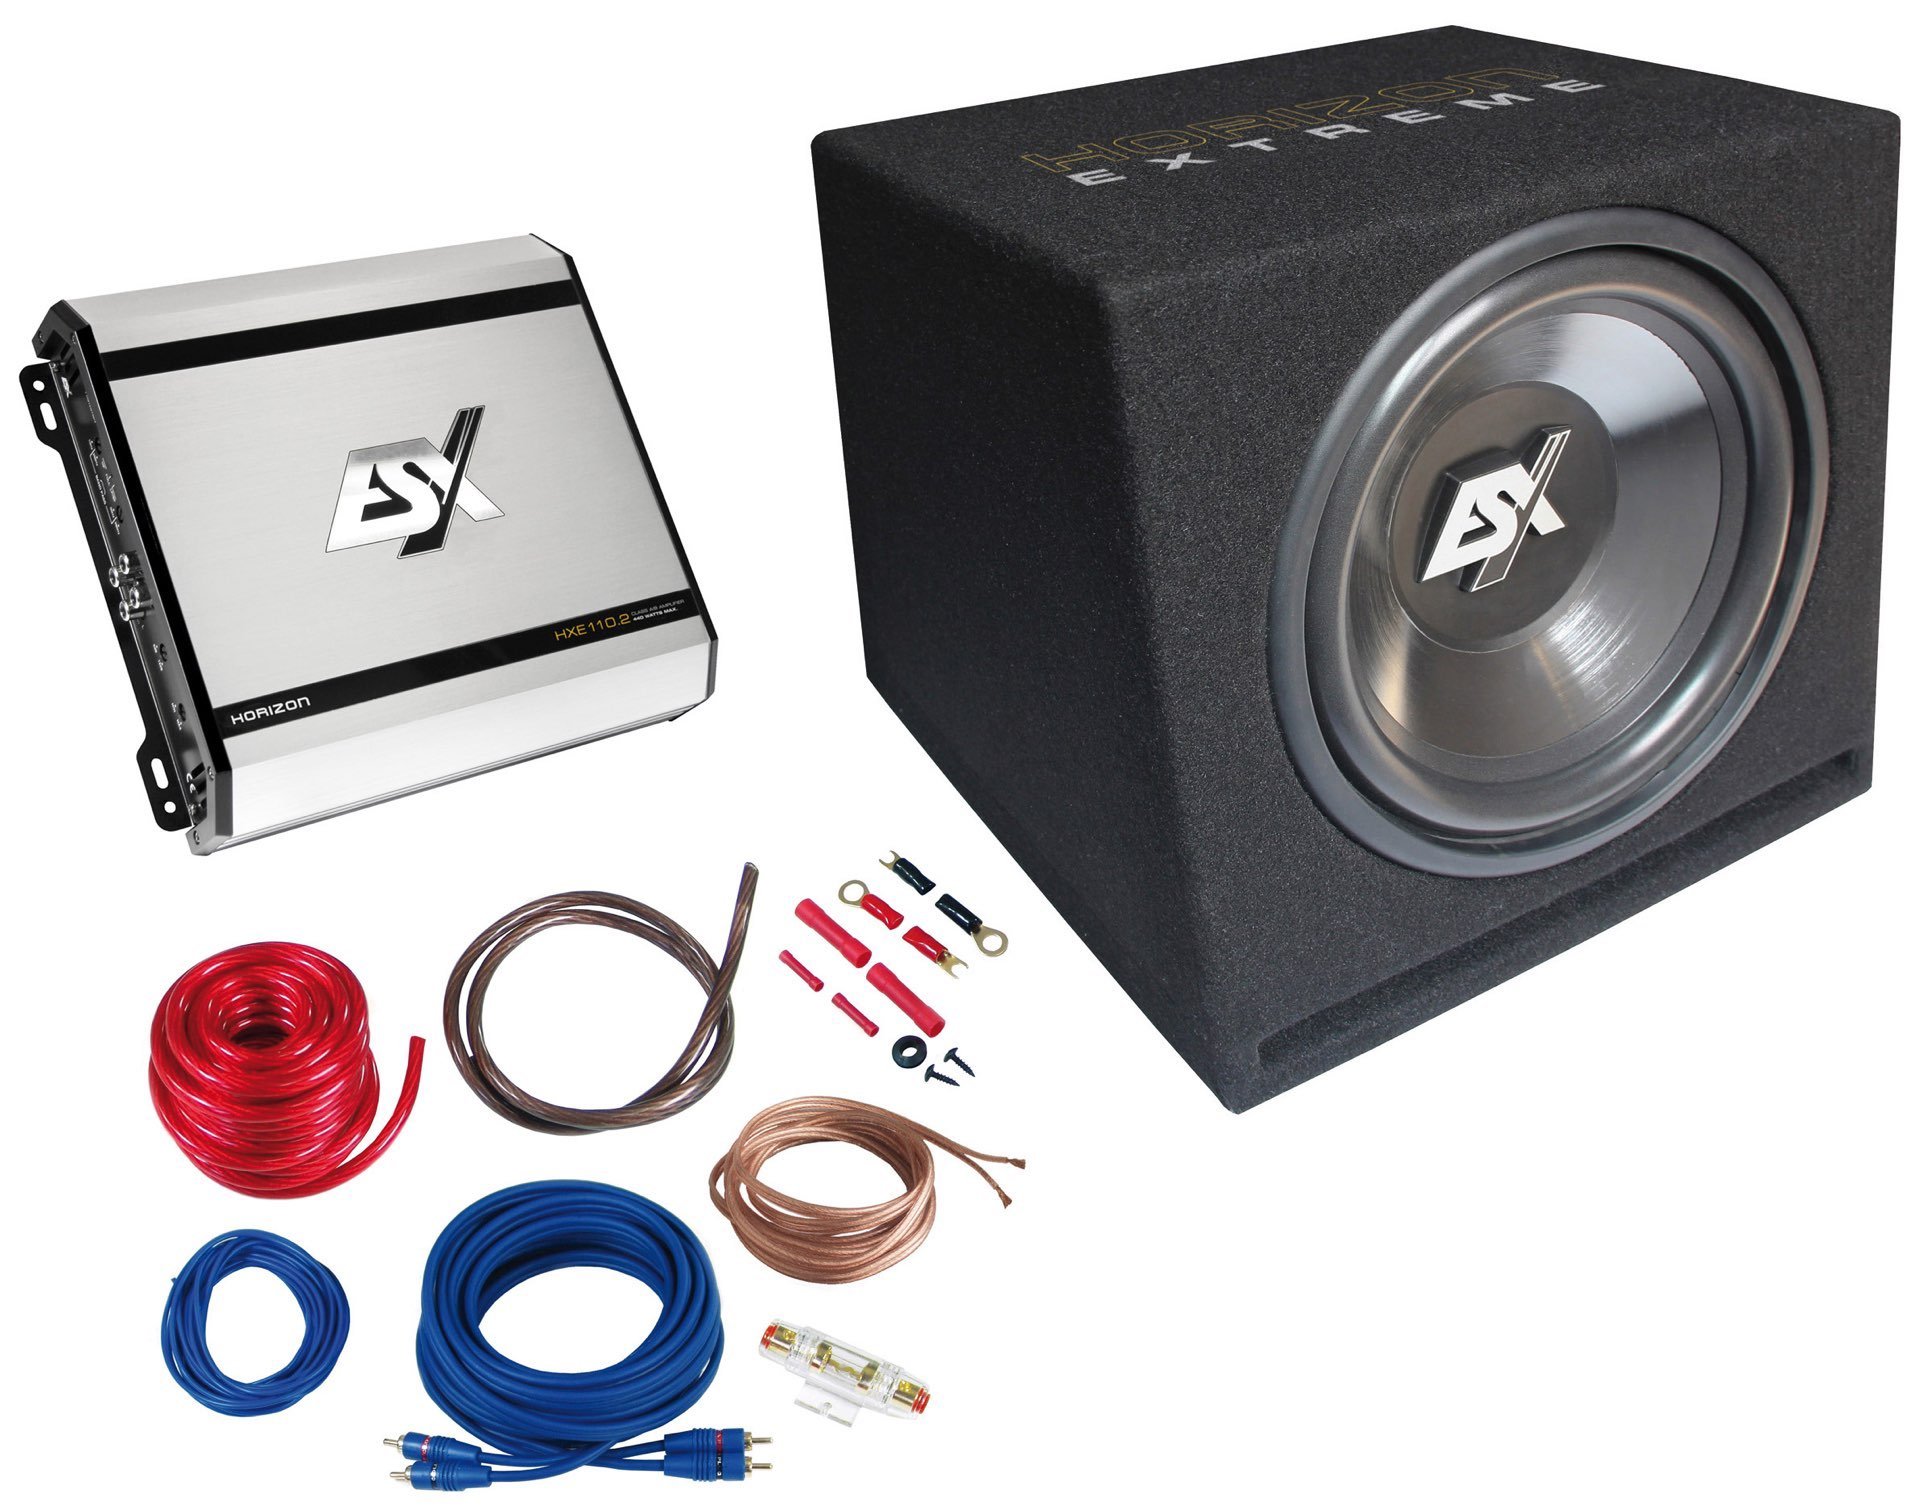 esx 440 w car hifi set subwoofer bass endstufe hxp2. Black Bedroom Furniture Sets. Home Design Ideas